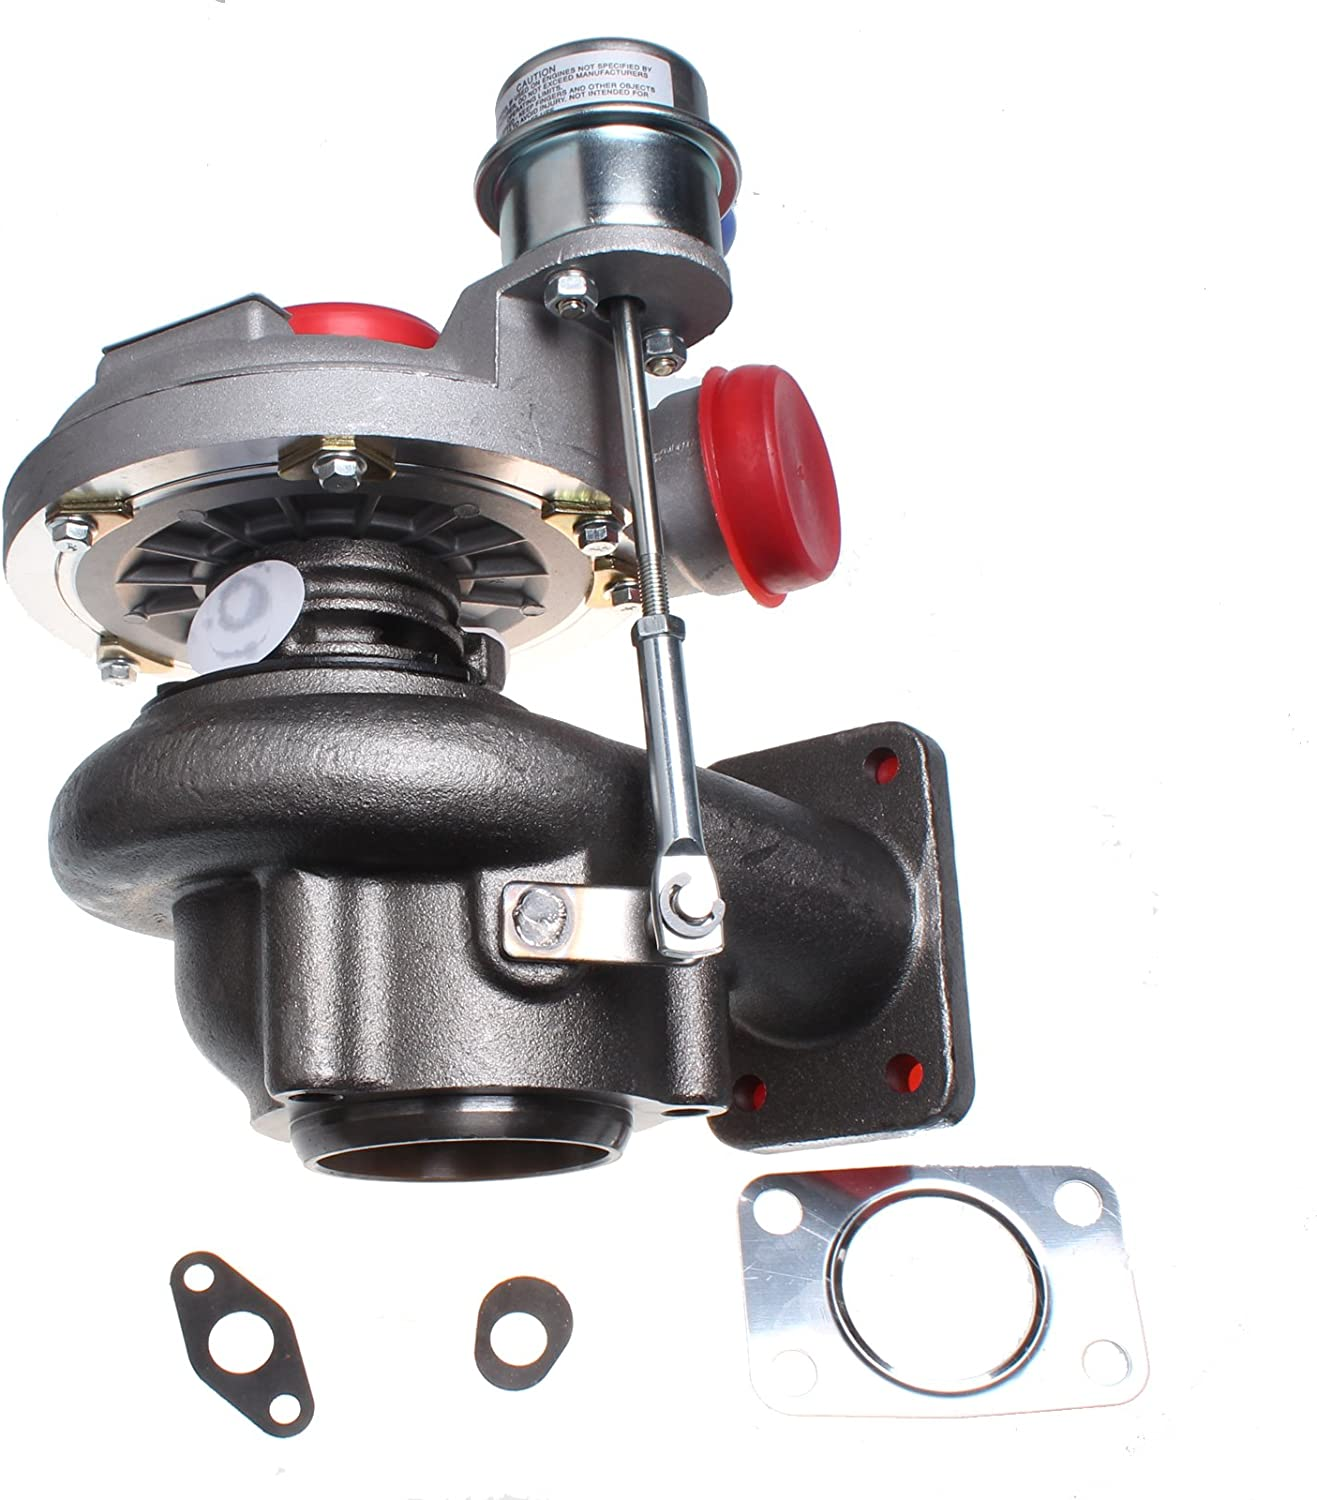 Holdwell Turbo Charger 2674A231 711736-5029S GT25 for Perkins T4.40 Engine